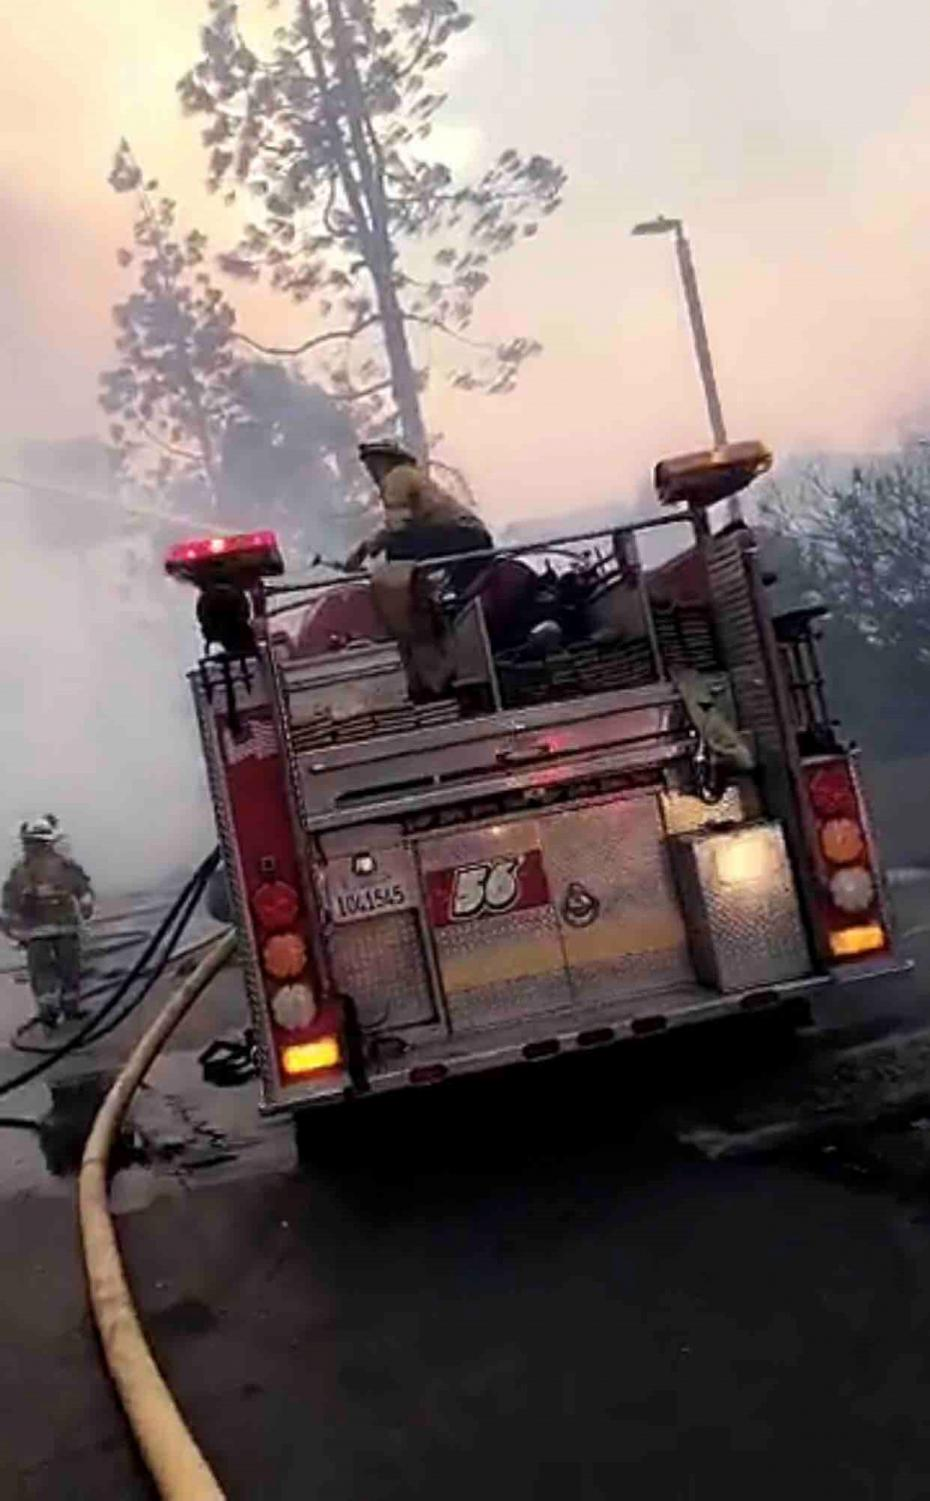 Firemen in a neighborhood that was burnt and continue to put out the remaining flames.